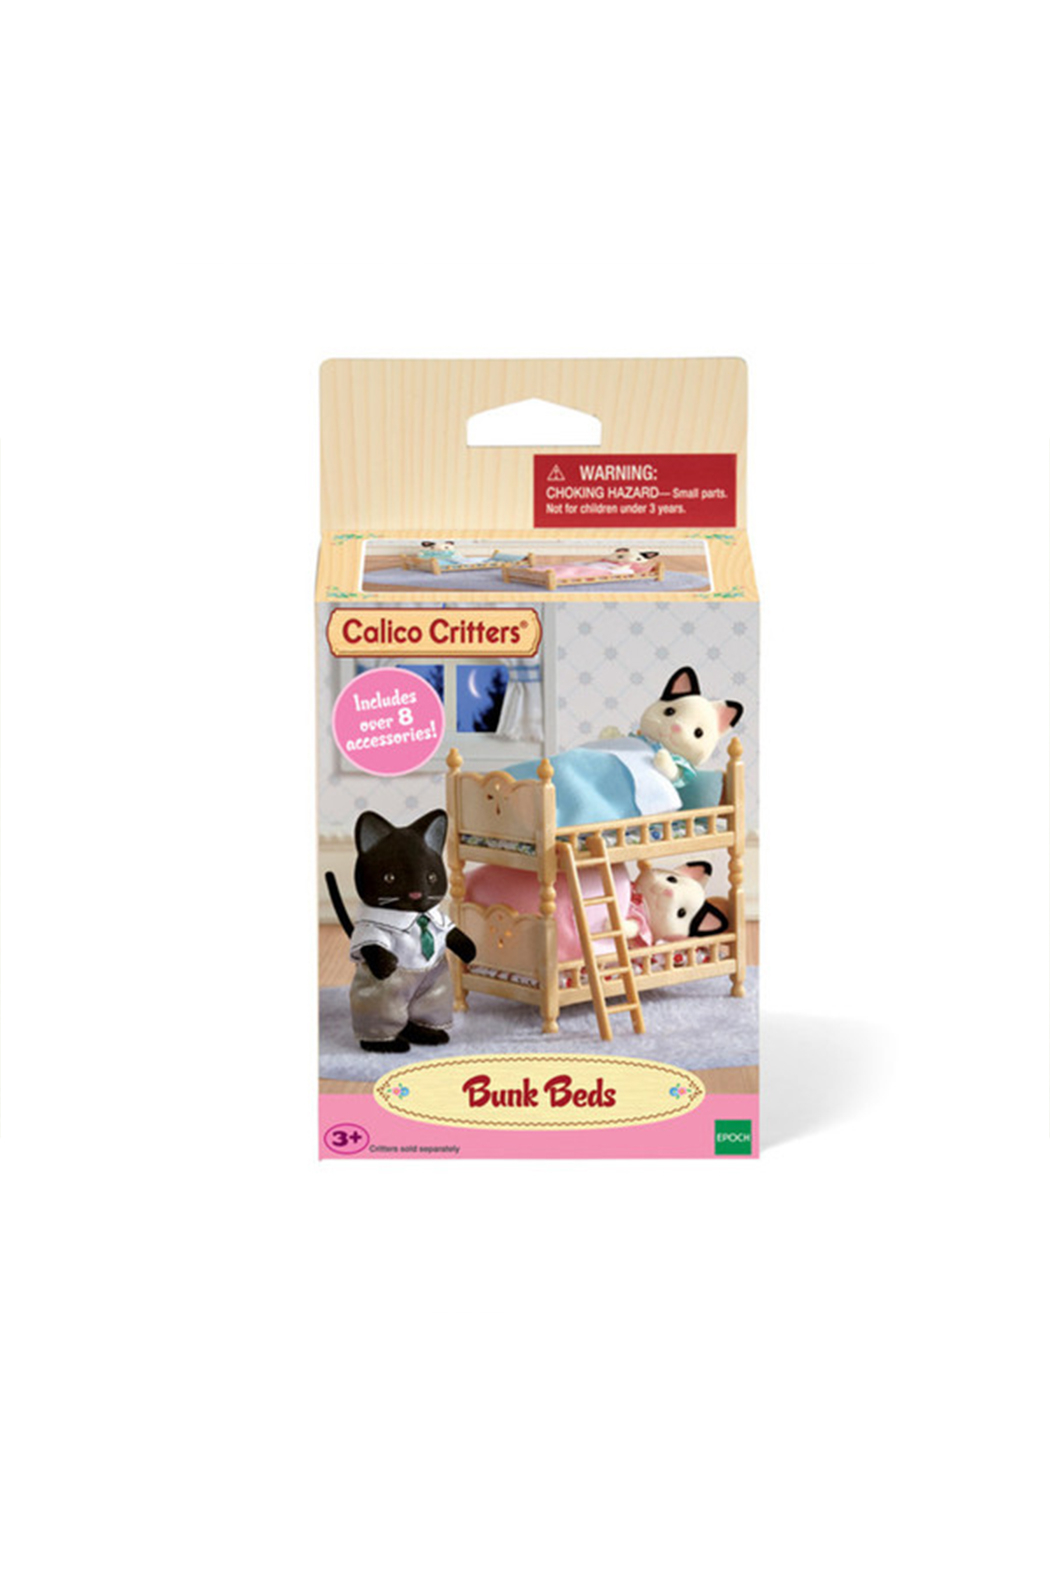 Calico Critters Stack And Play Bunk Beds - Main Image